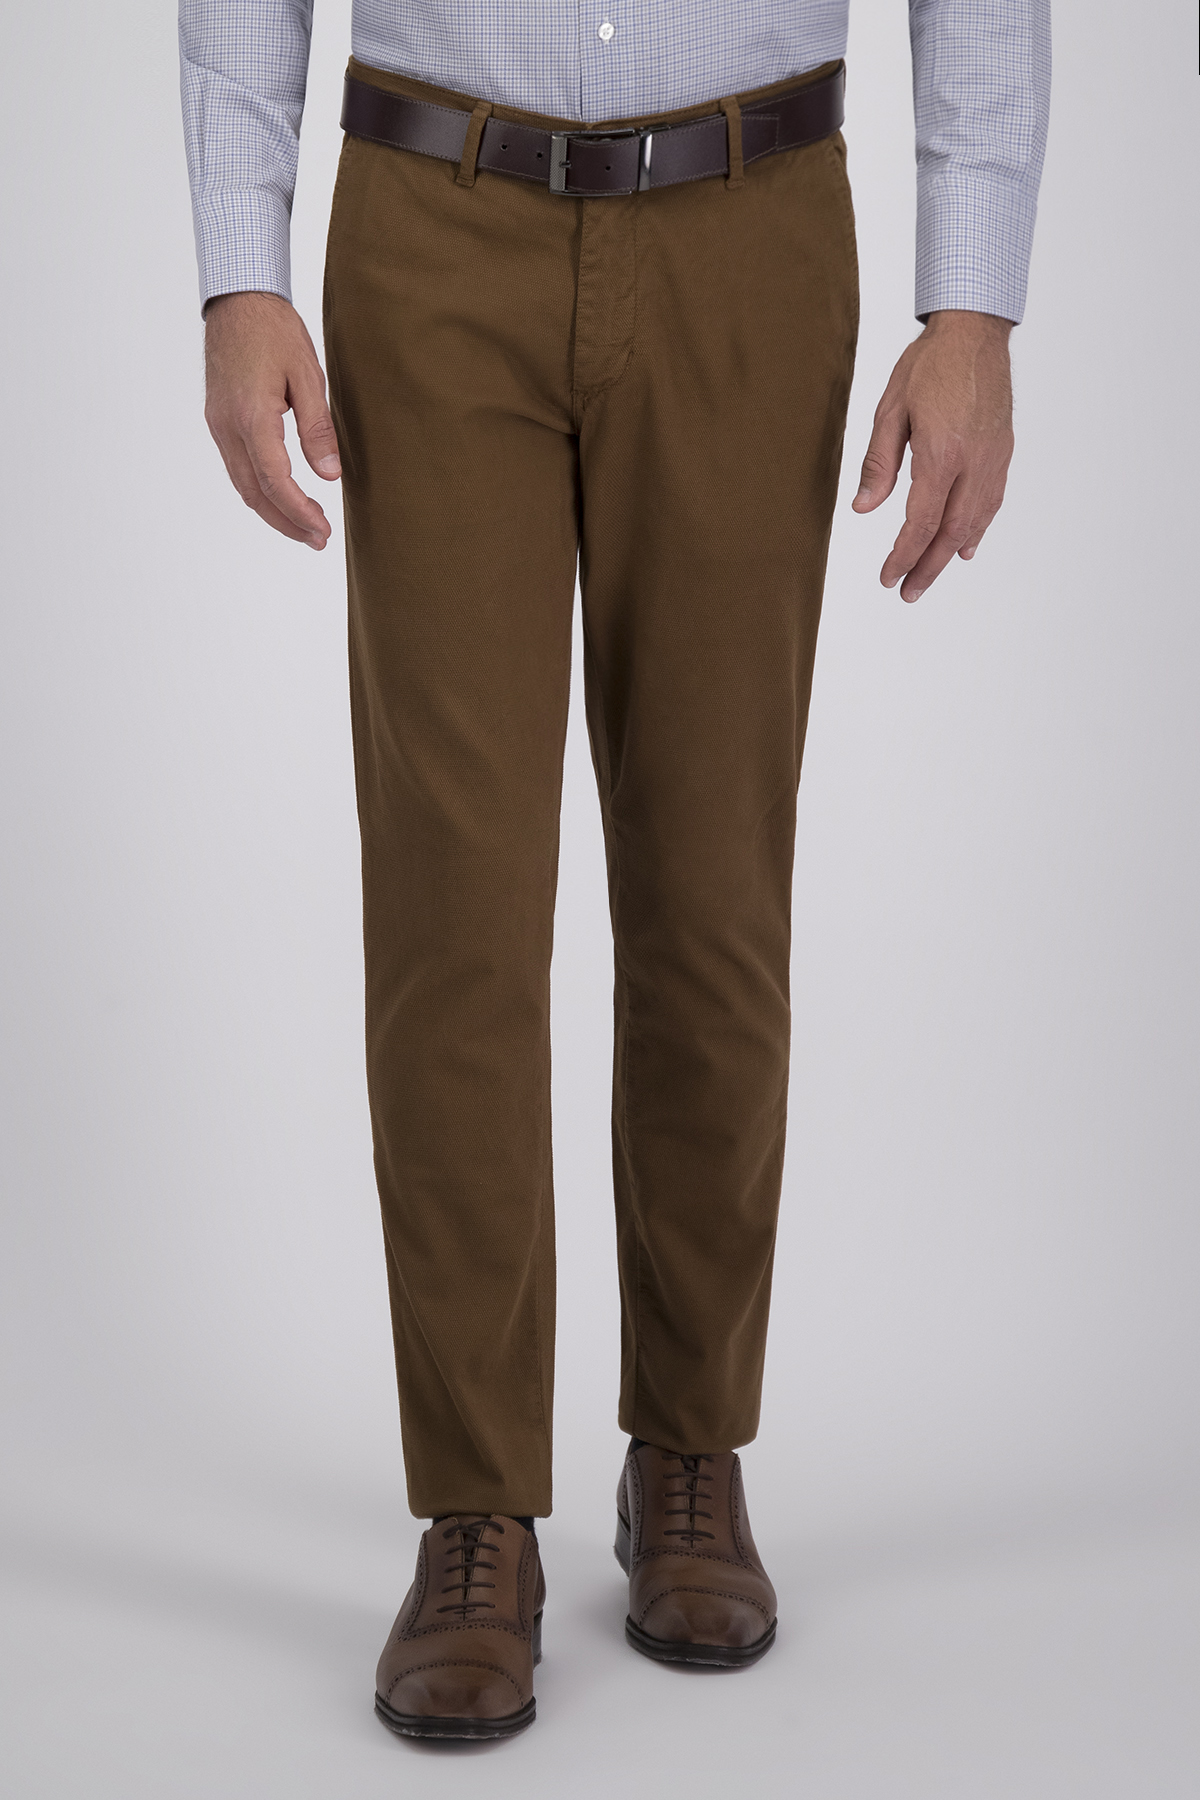 Pantalón Sport High Life, Algodón 100%  Café, Corte Slim, Tipo Chino, Made in Italy.